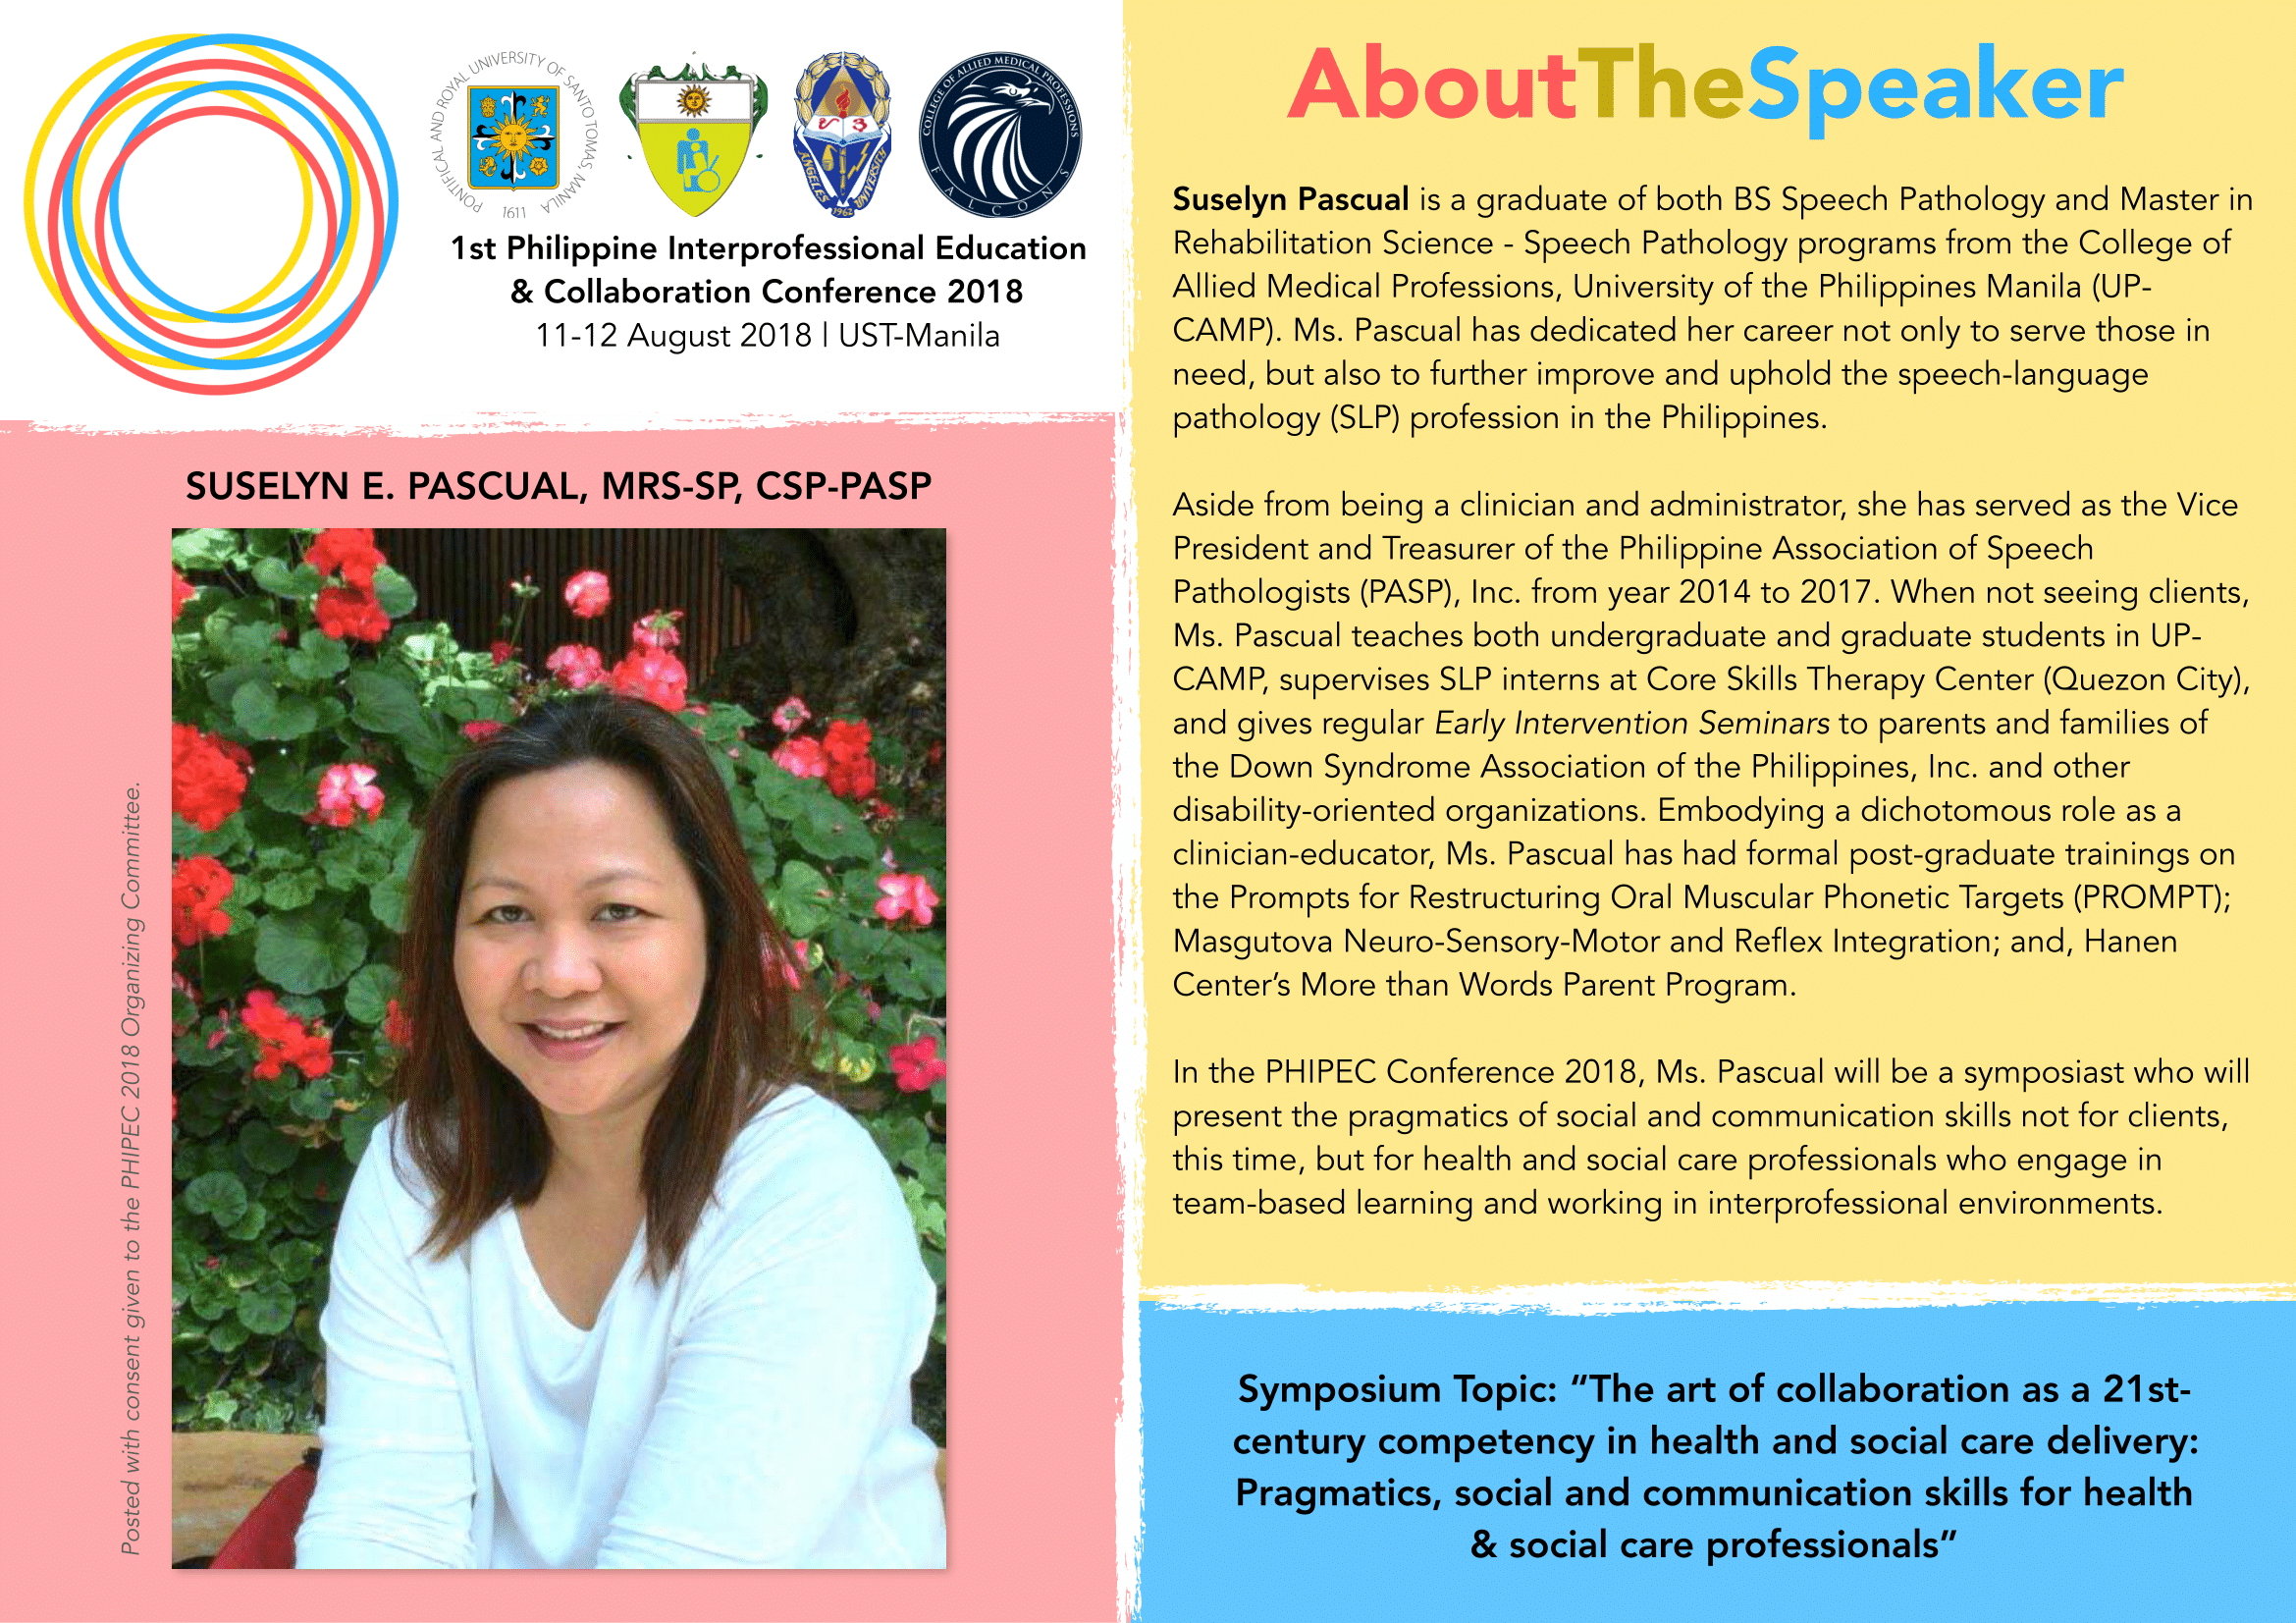 Suselyn E. Pascual, MRS-SP, CPS-PASP